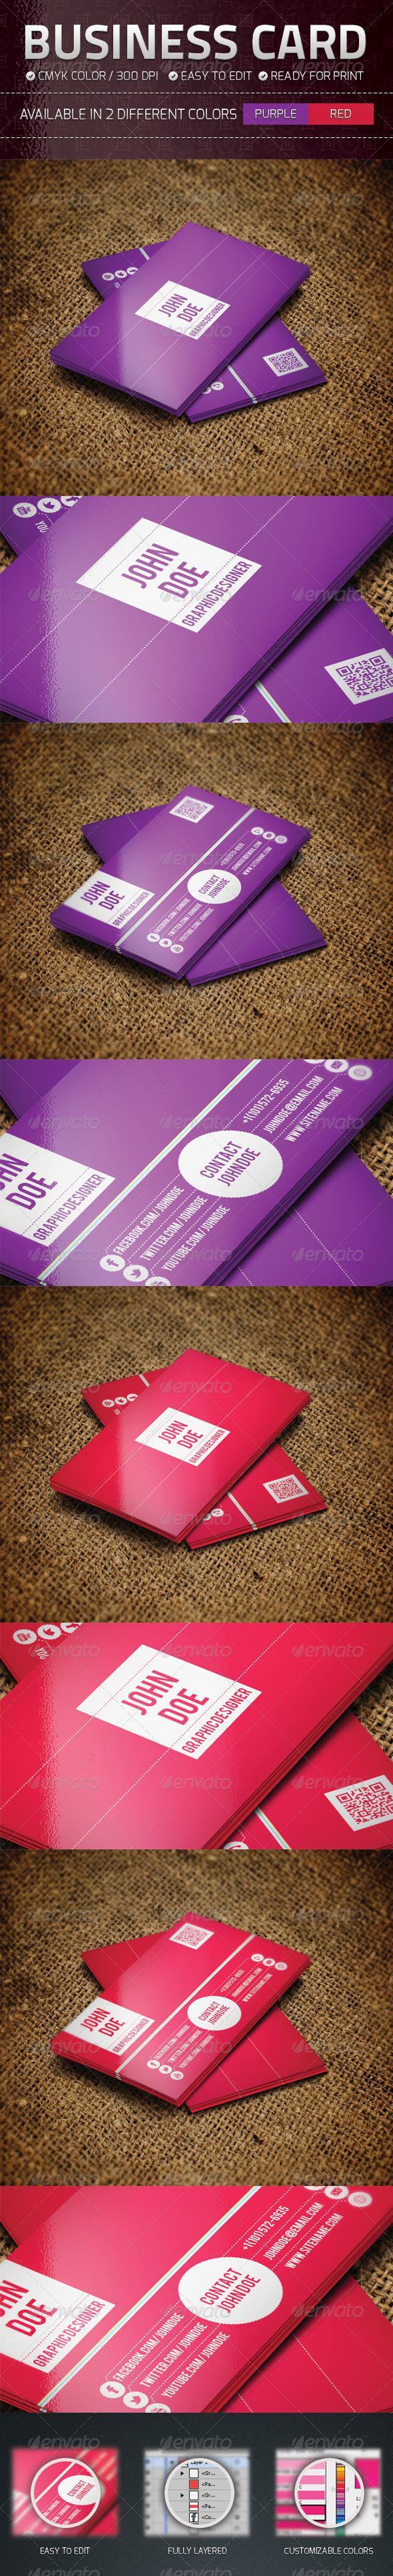 Purple and Red Business Card - Business Cards Print Templates